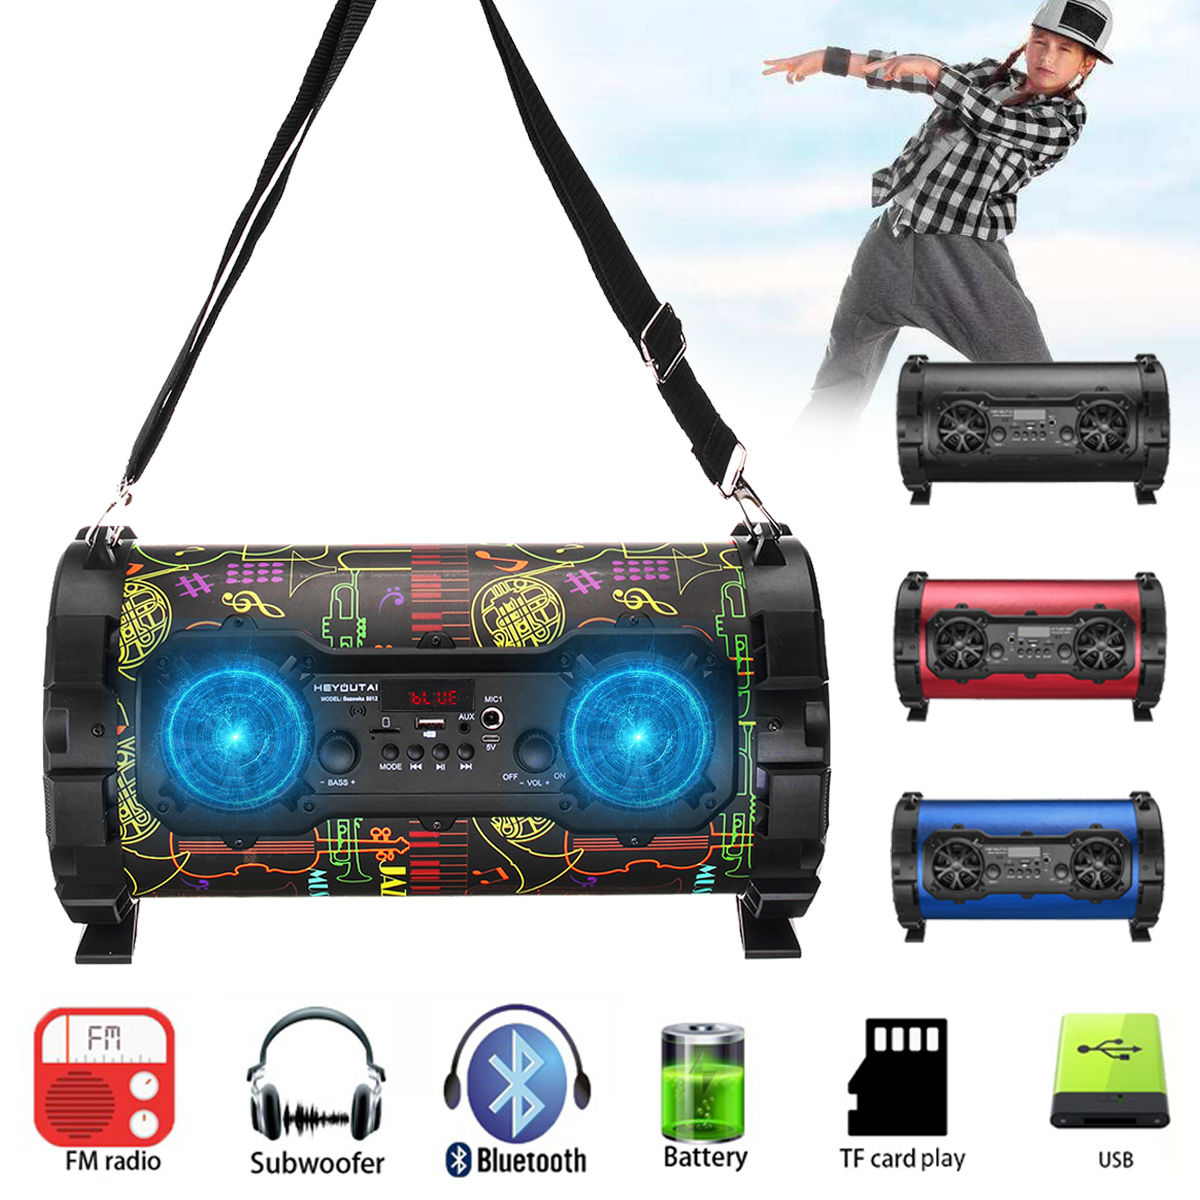 25W Wireless Bluetooth Speaker Stereo Bass Portable Loudspeaker Sound System AUX/USB/TF Card/FM Radio Outdoor Speaker Subwoofer portable bluetooth speaker wireless outdoor stereo bass sound hifi loudspeaker 20w high power big speaker with tf card fm radio